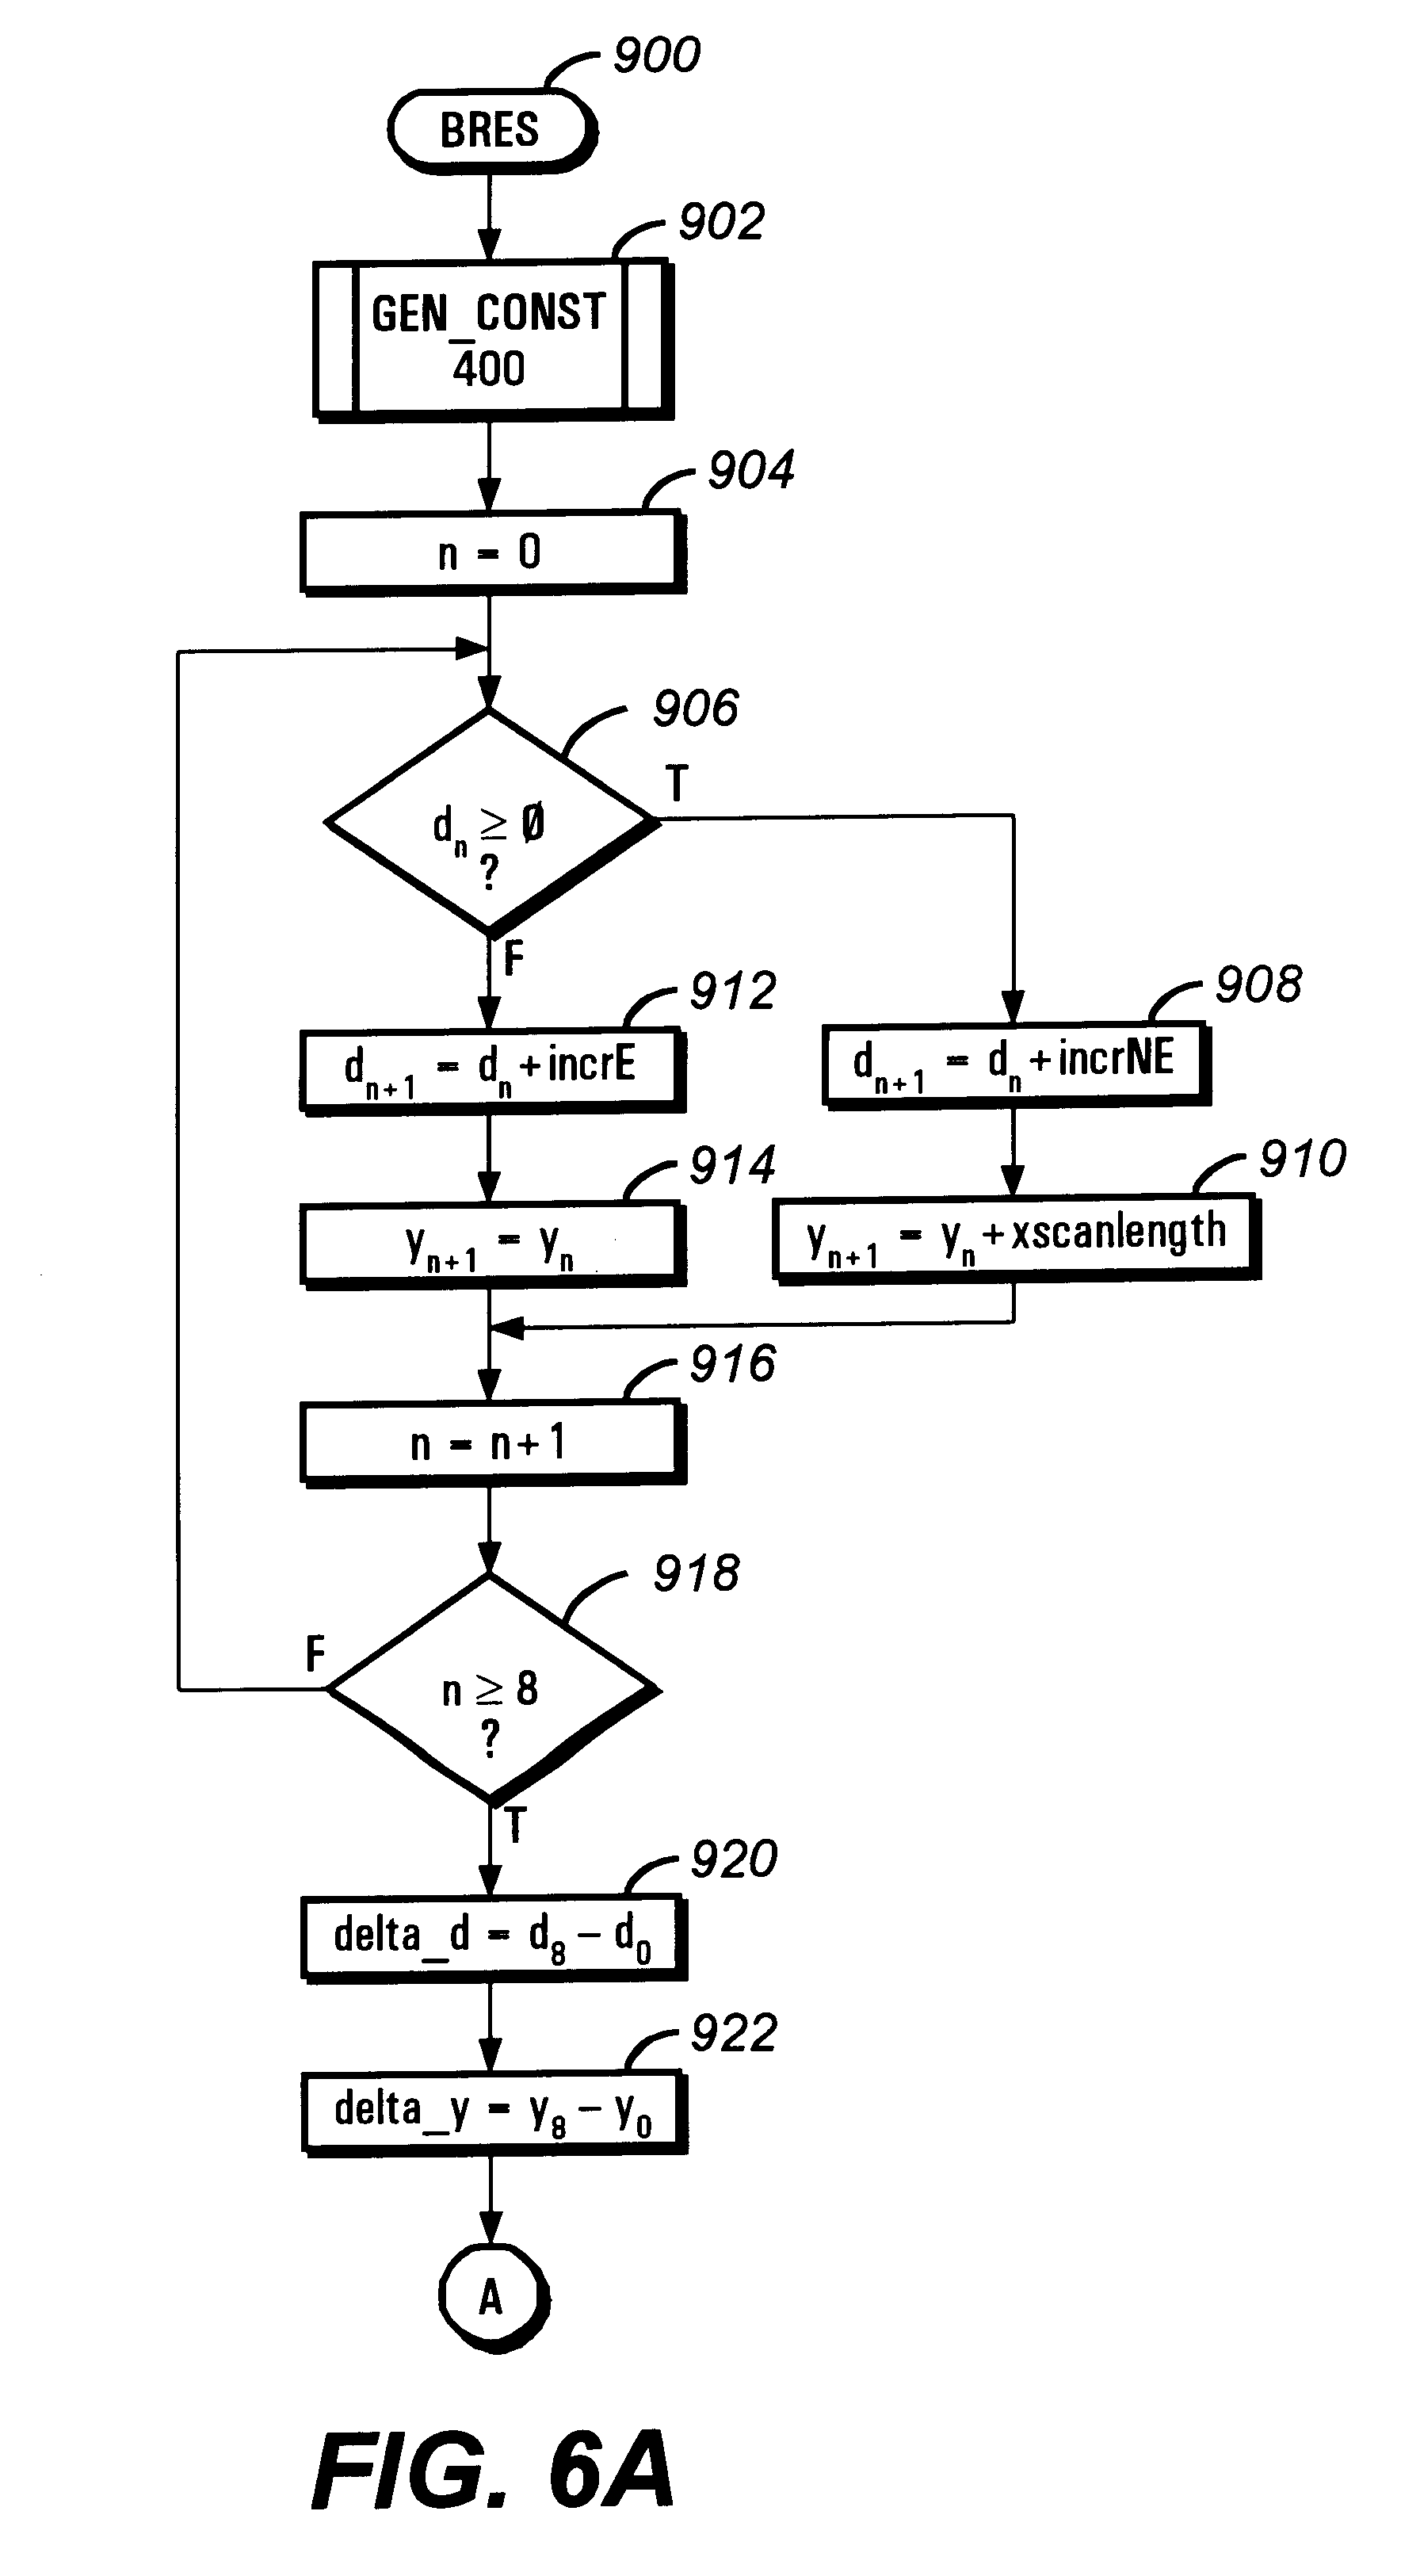 Bresenham Line Drawing Algorithm Mit : Patent us line drawing using operand routing and